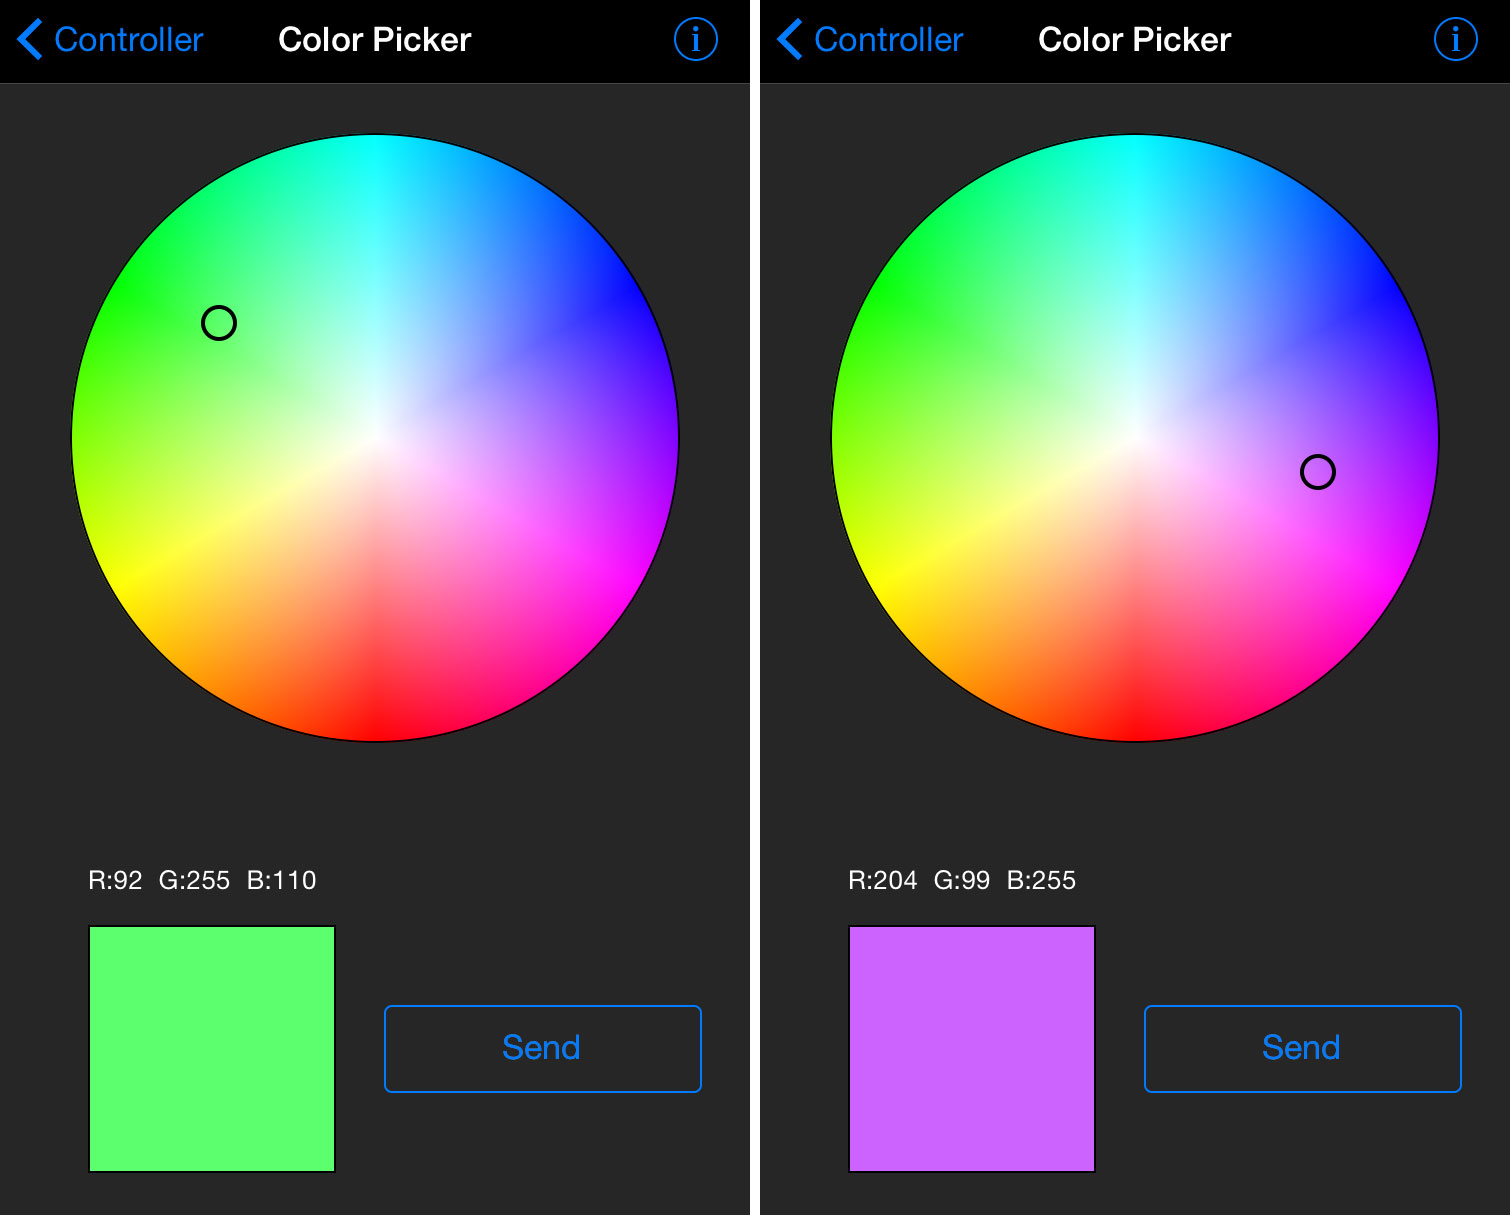 adafruit_products_projects_ColorPicker.jpg